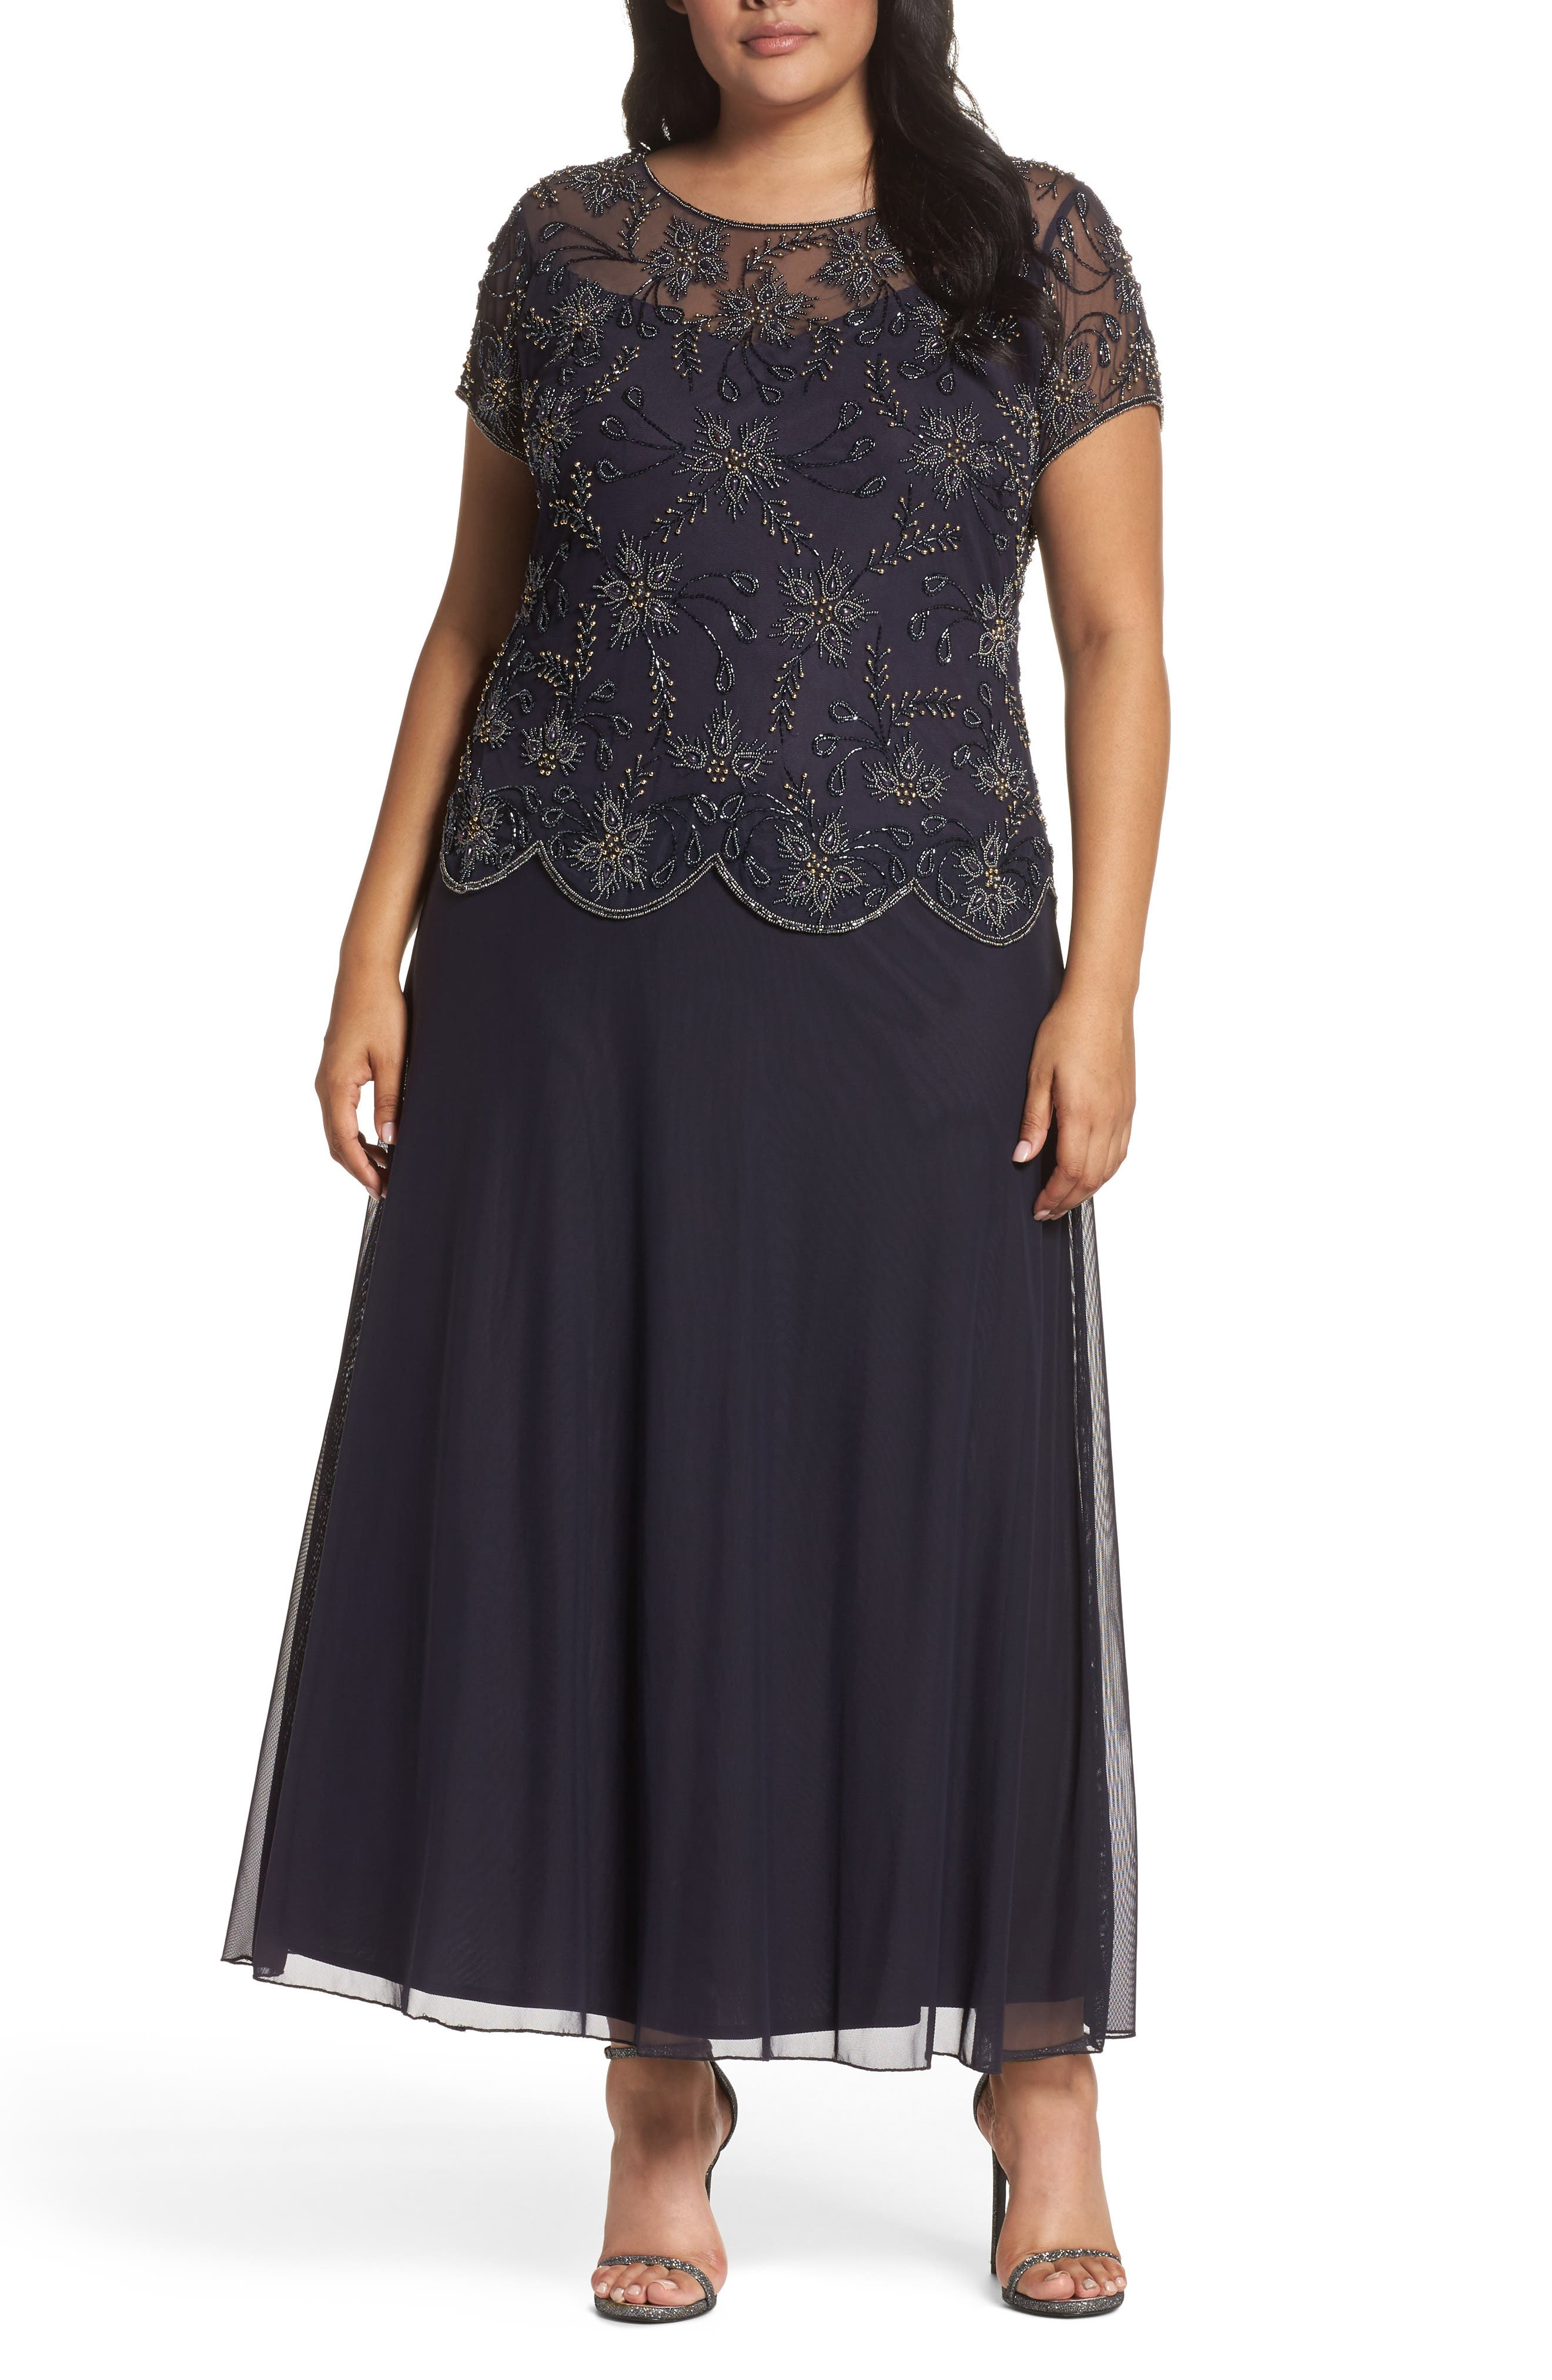 Alternate Image 1 Selected - Pisarro Nights Embellished Mock Two-Piece Maxi Dress (Plus Size)